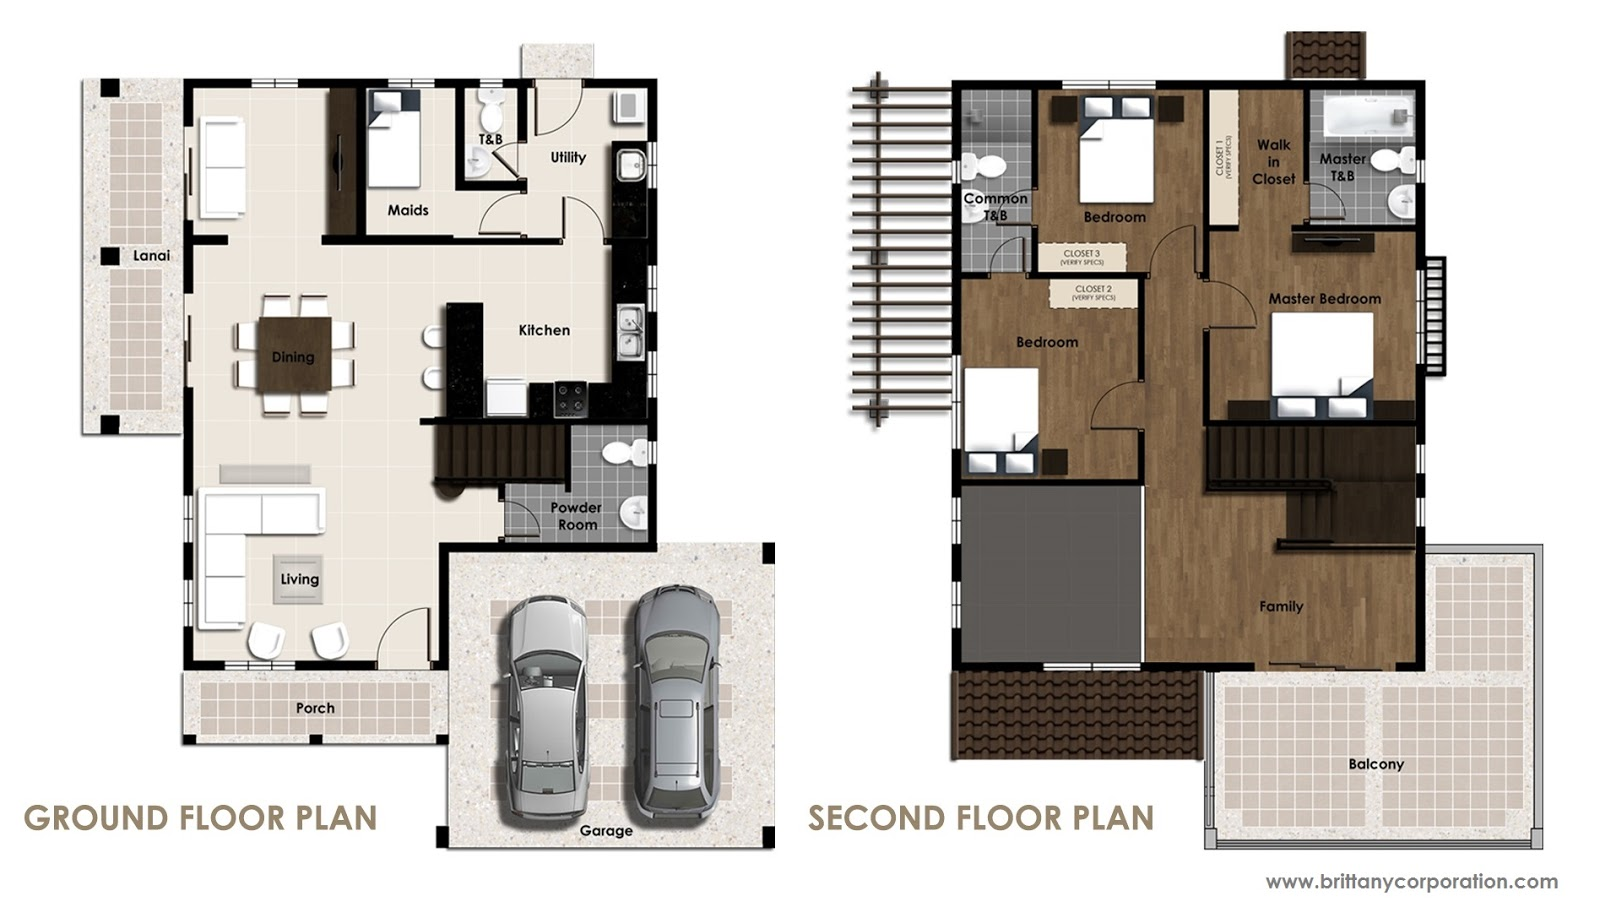 Floor Plan of Carletti Model - Amore Portofino   House and Lot for Sale Daang Reyna Las Pinas